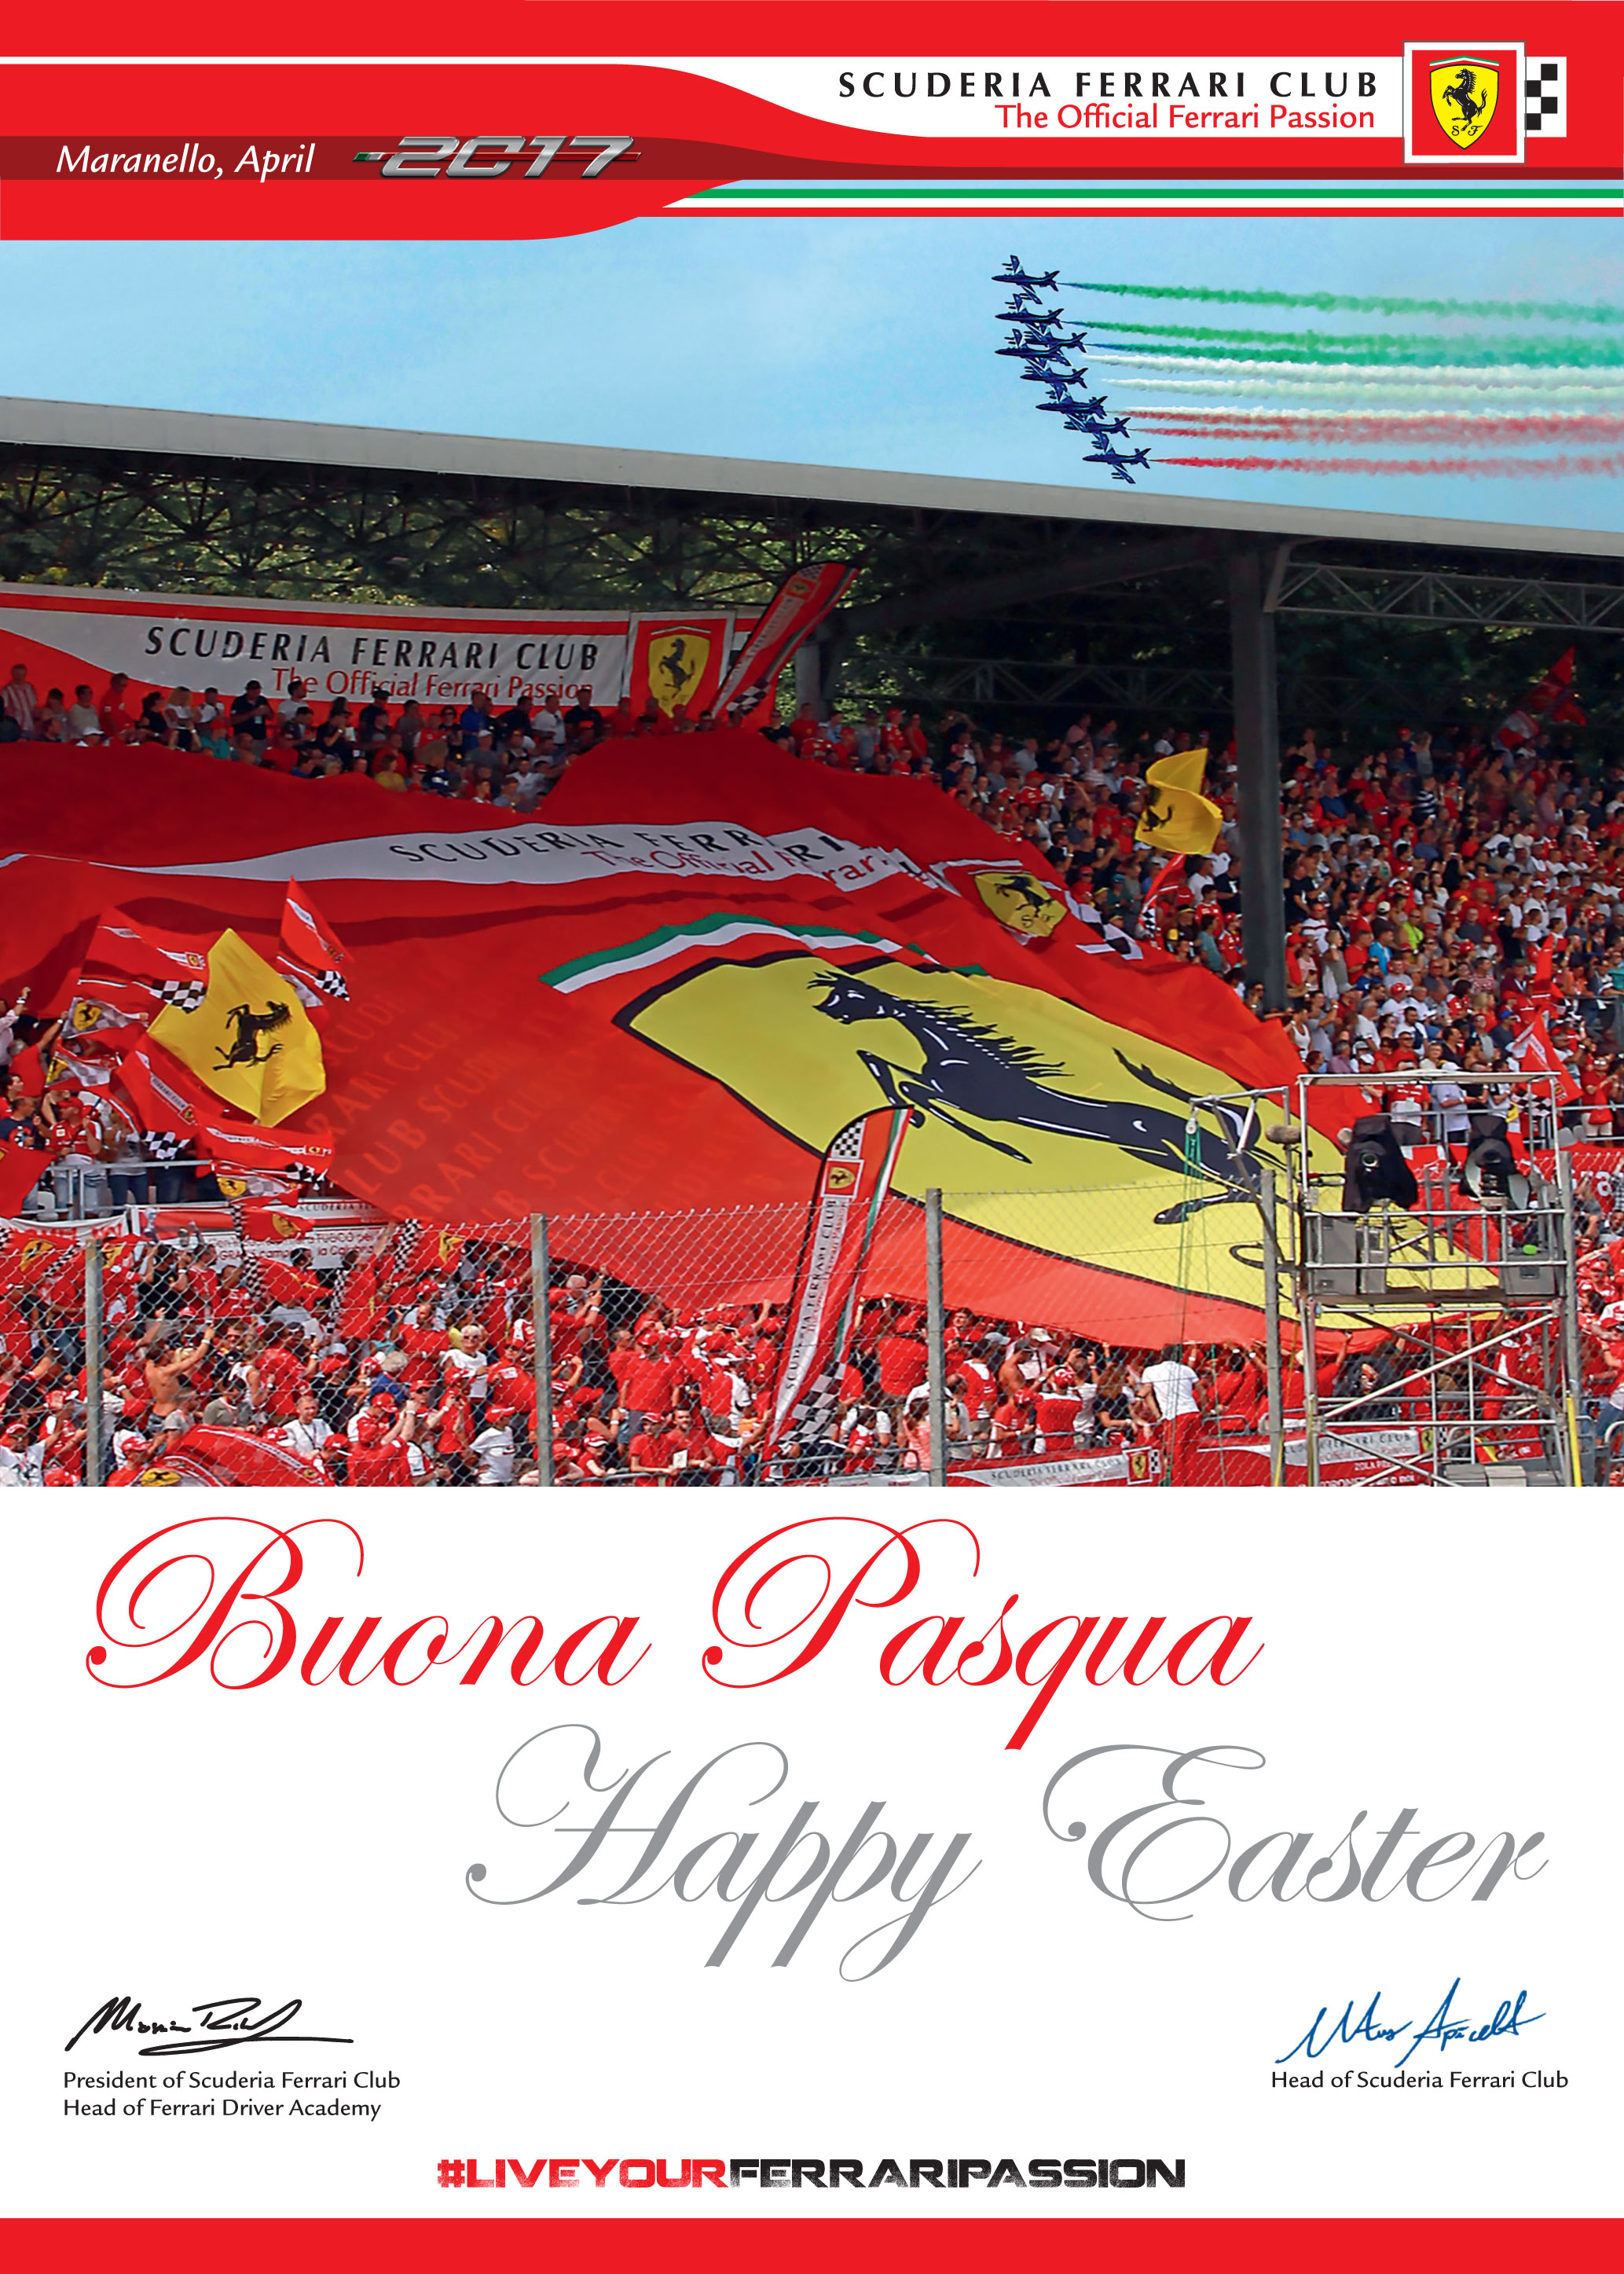 Happy-EASTER-2017-to-Scuderia-Ferrari-Club